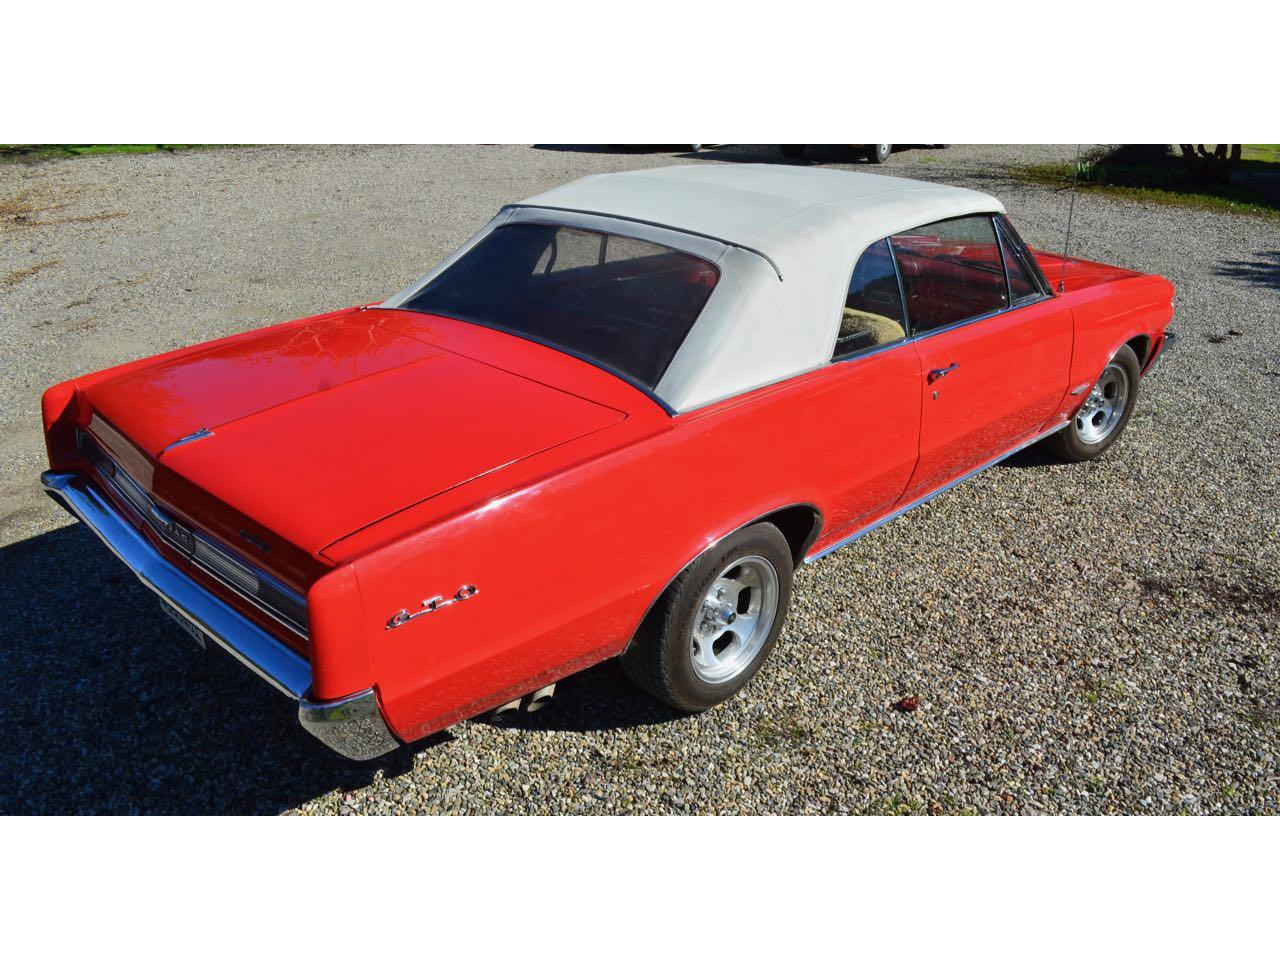 Large Picture of 1964 LeMans located in California - $49,500.00 Offered by Spoke Motors - KK9E